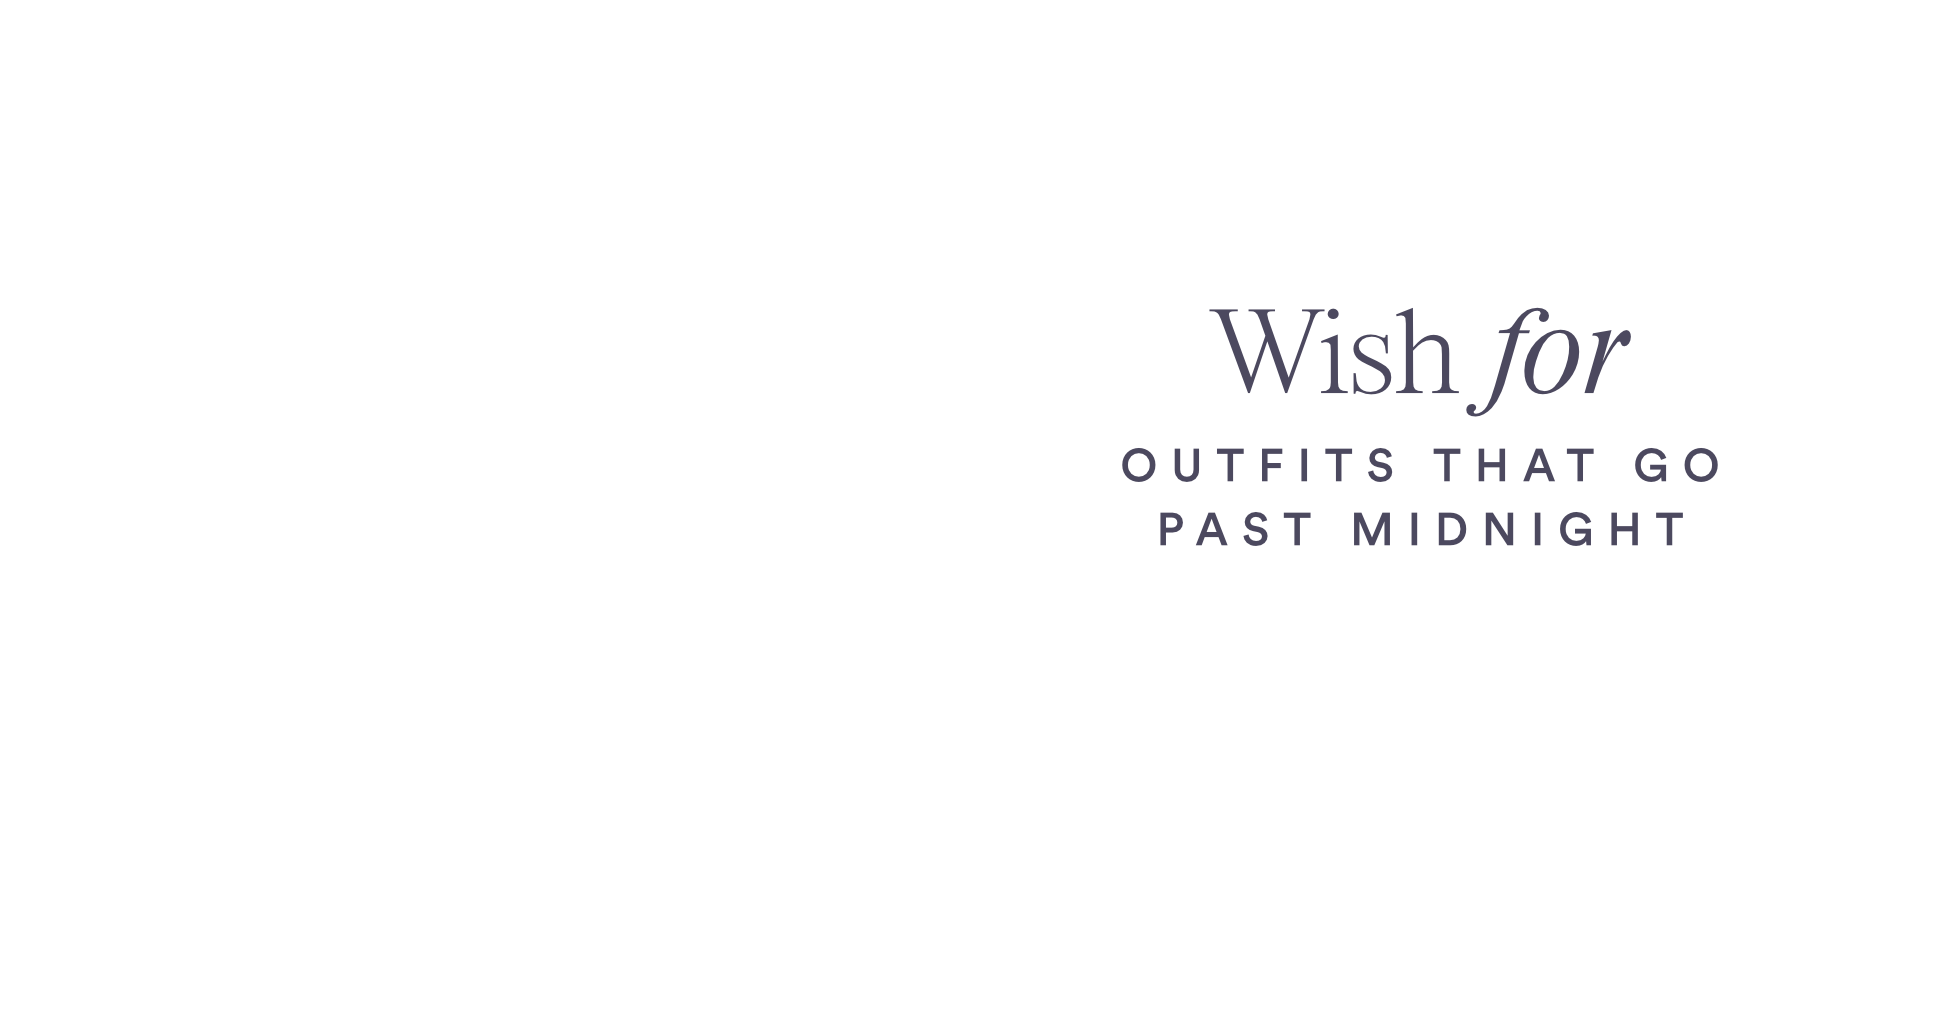 Wish for OUTFITS THAT GO PAST MIDNIGHT